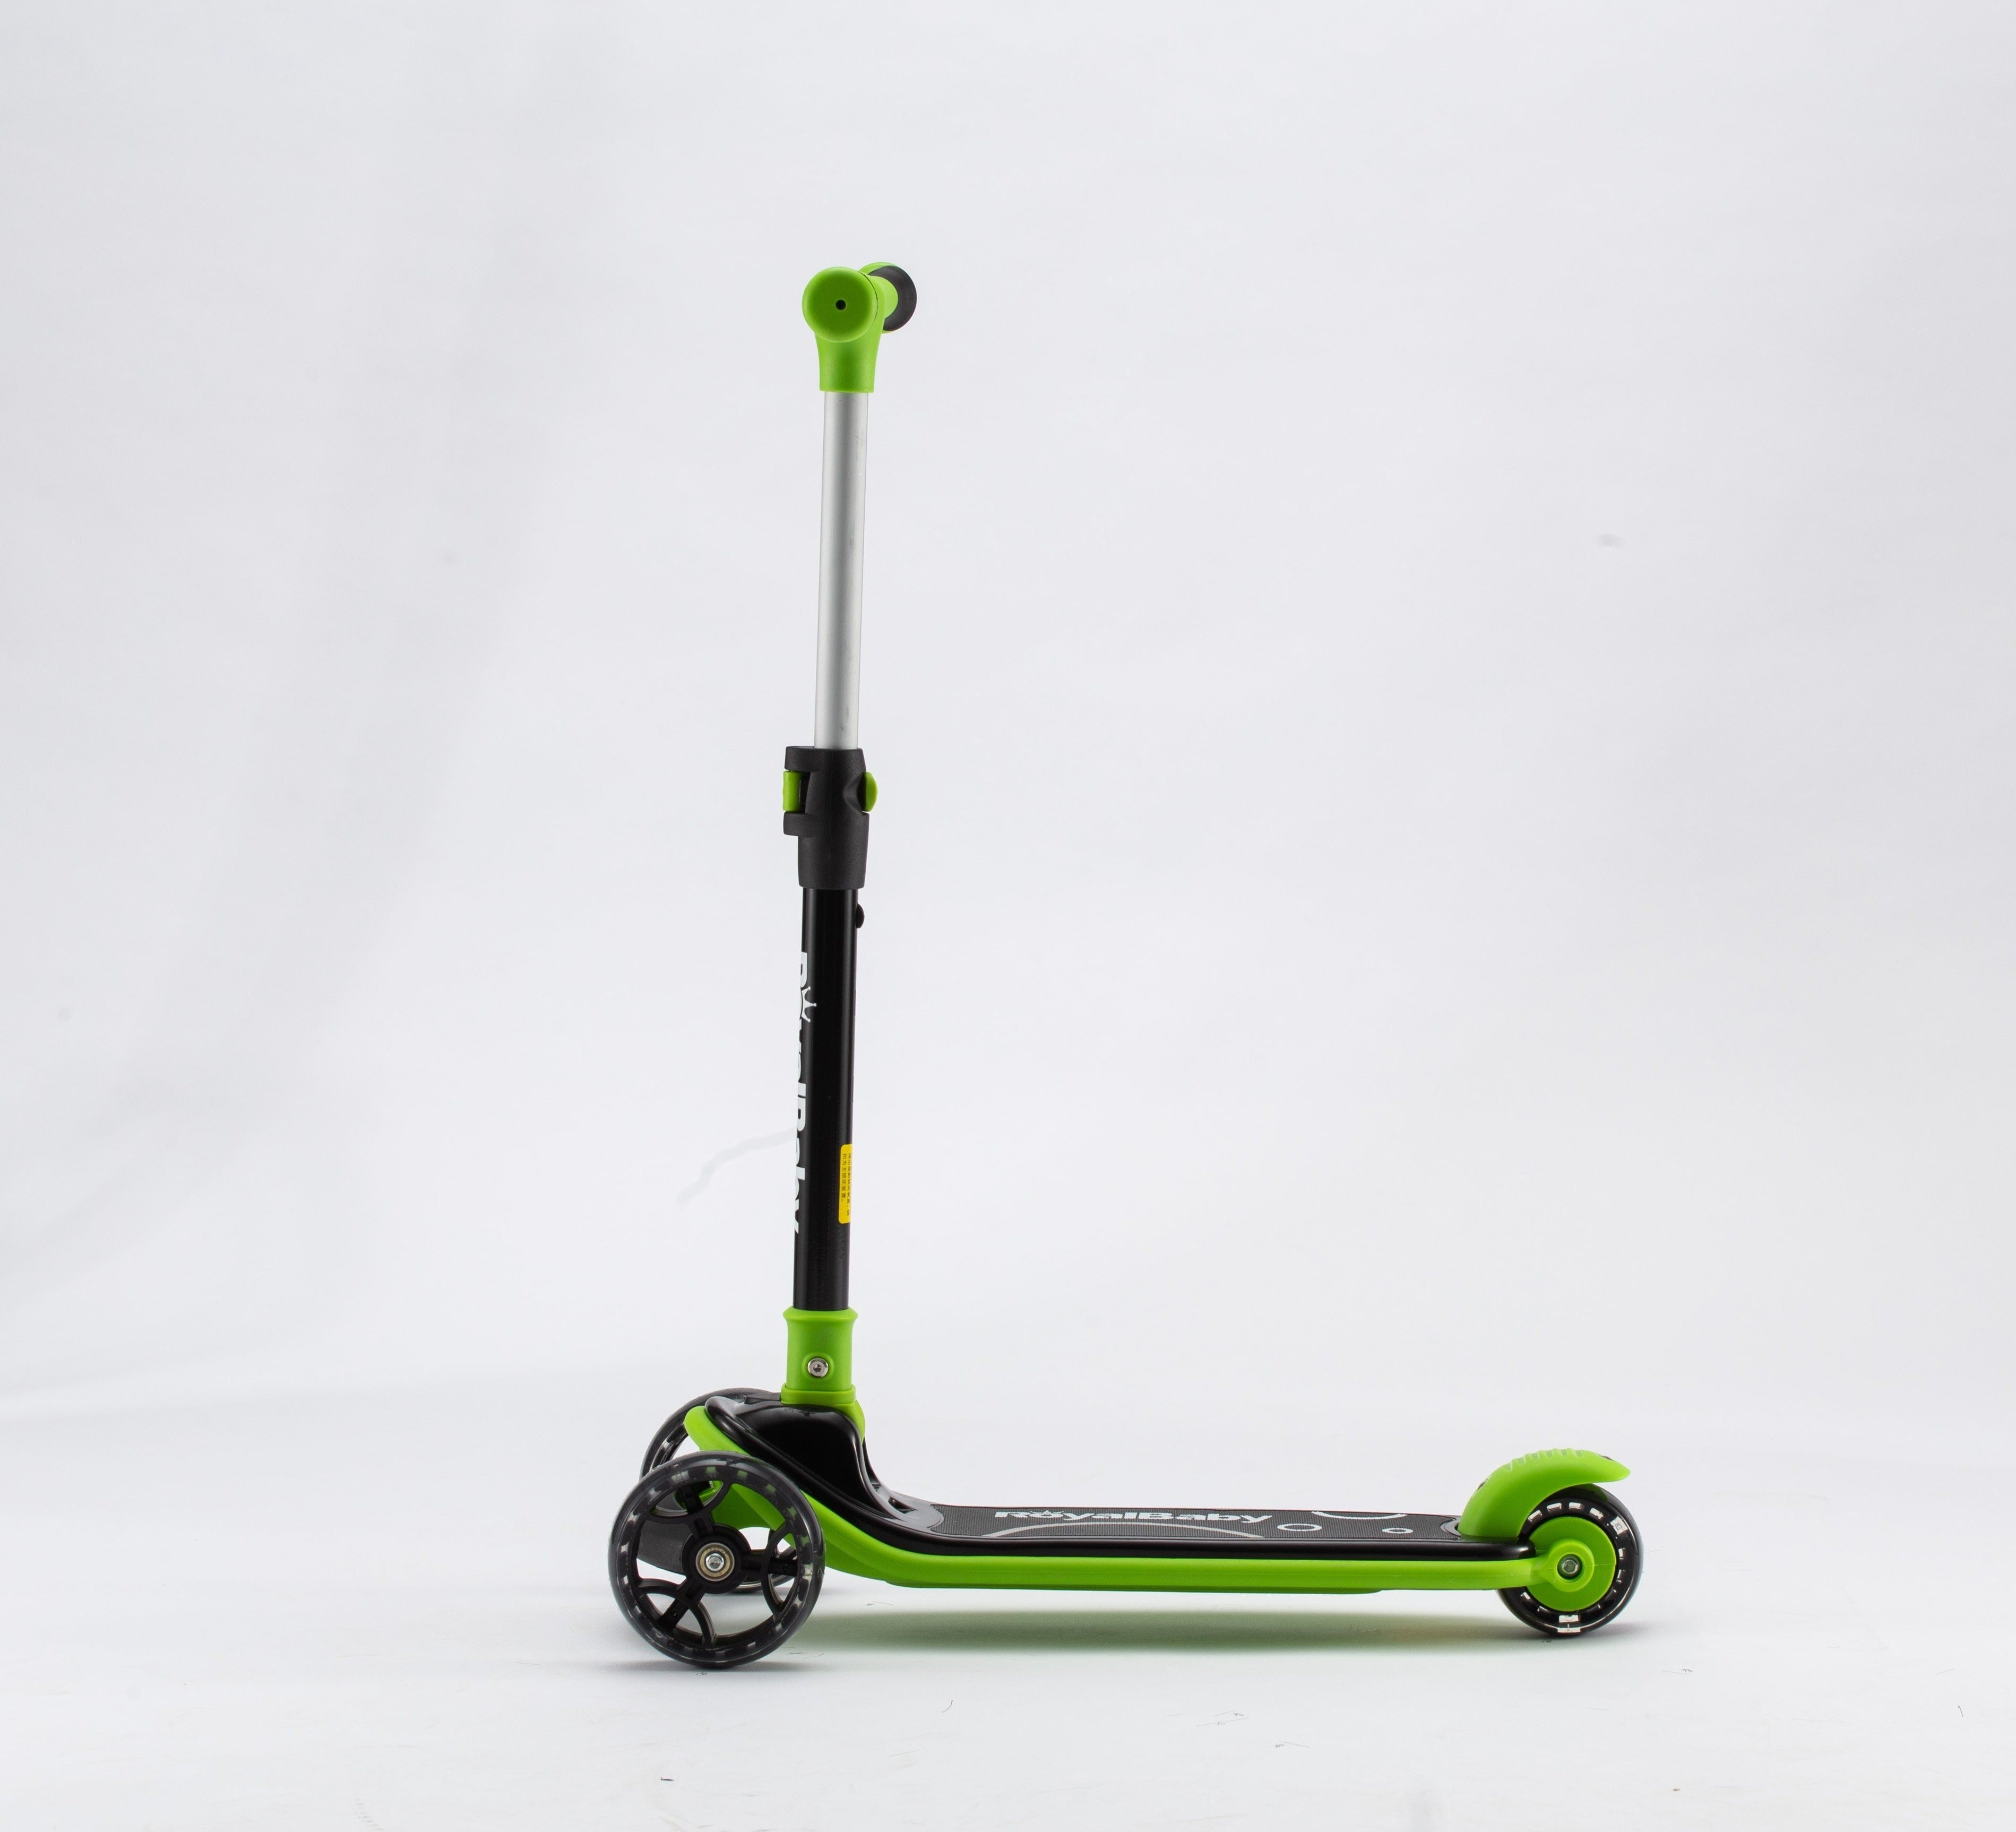 RoyalBaby Upgrade Toddler Kids Scooter(089-19)-Black/Green